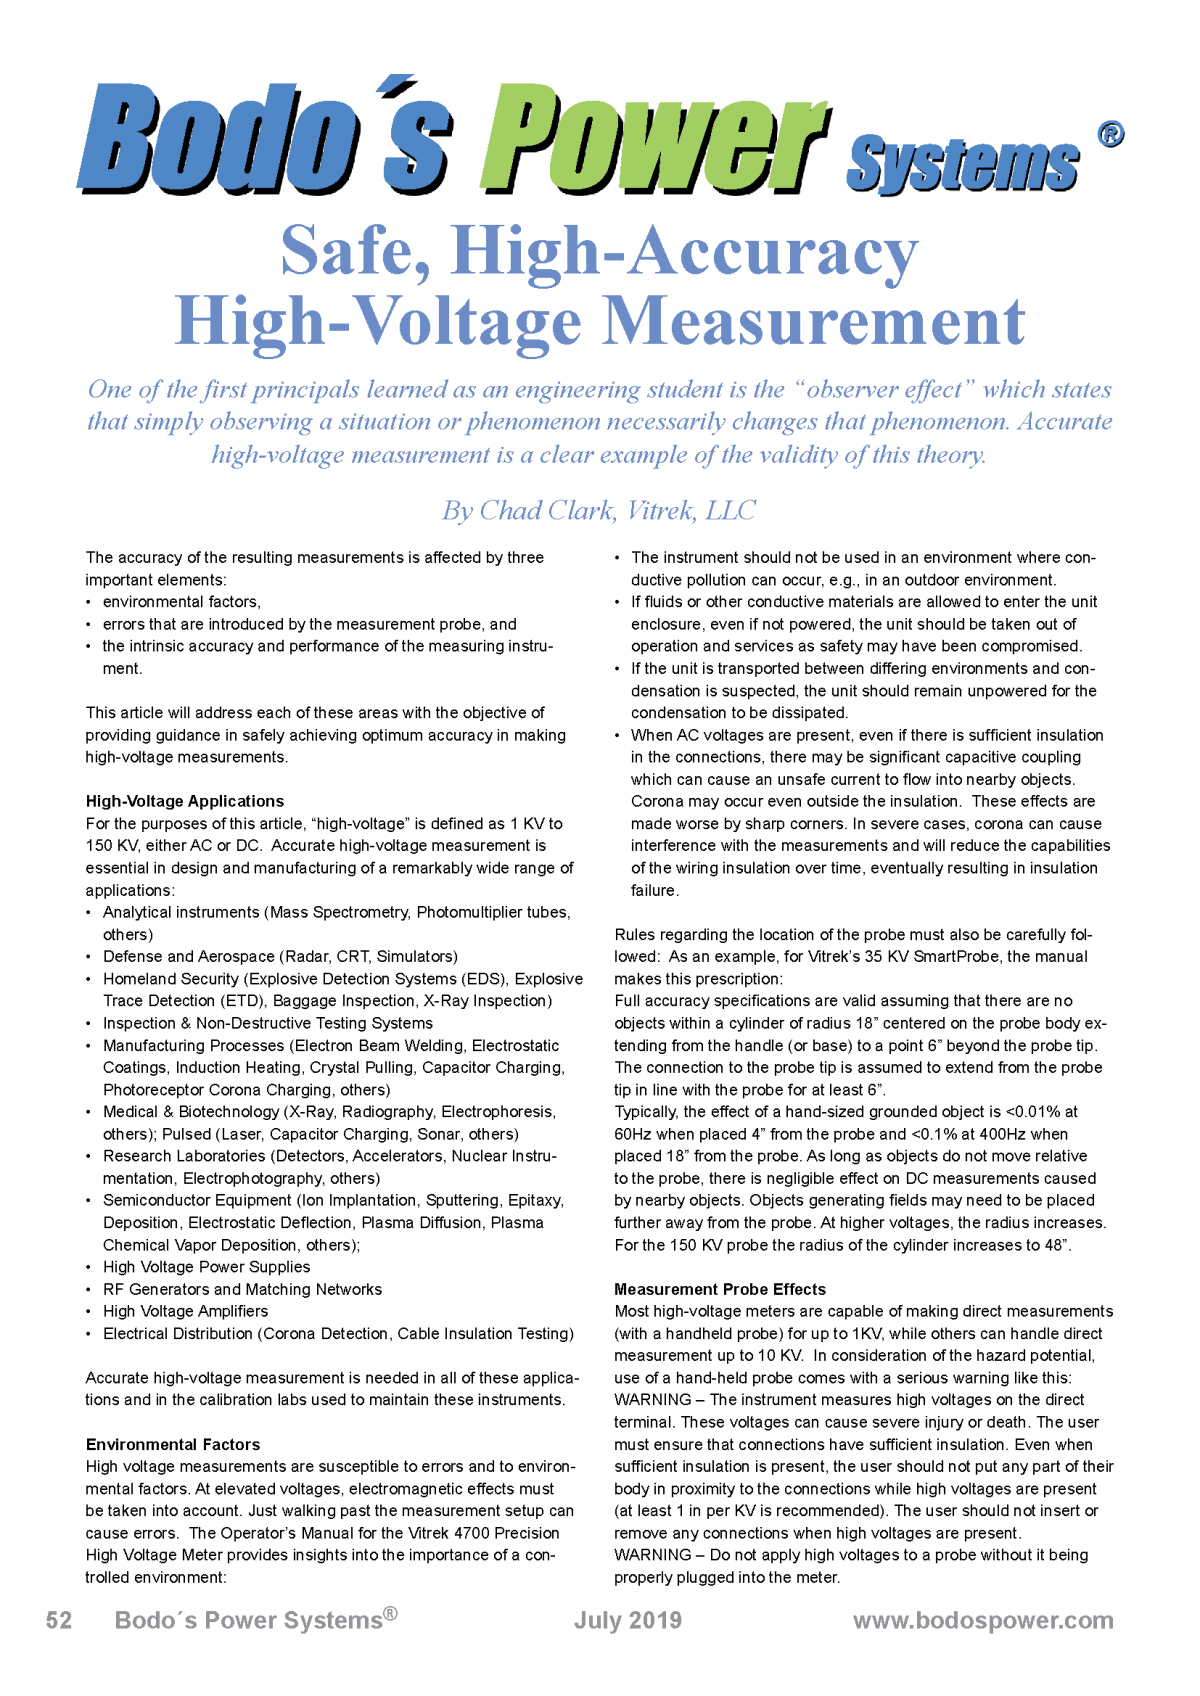 bodo power safe high accuracy high voltage measurement